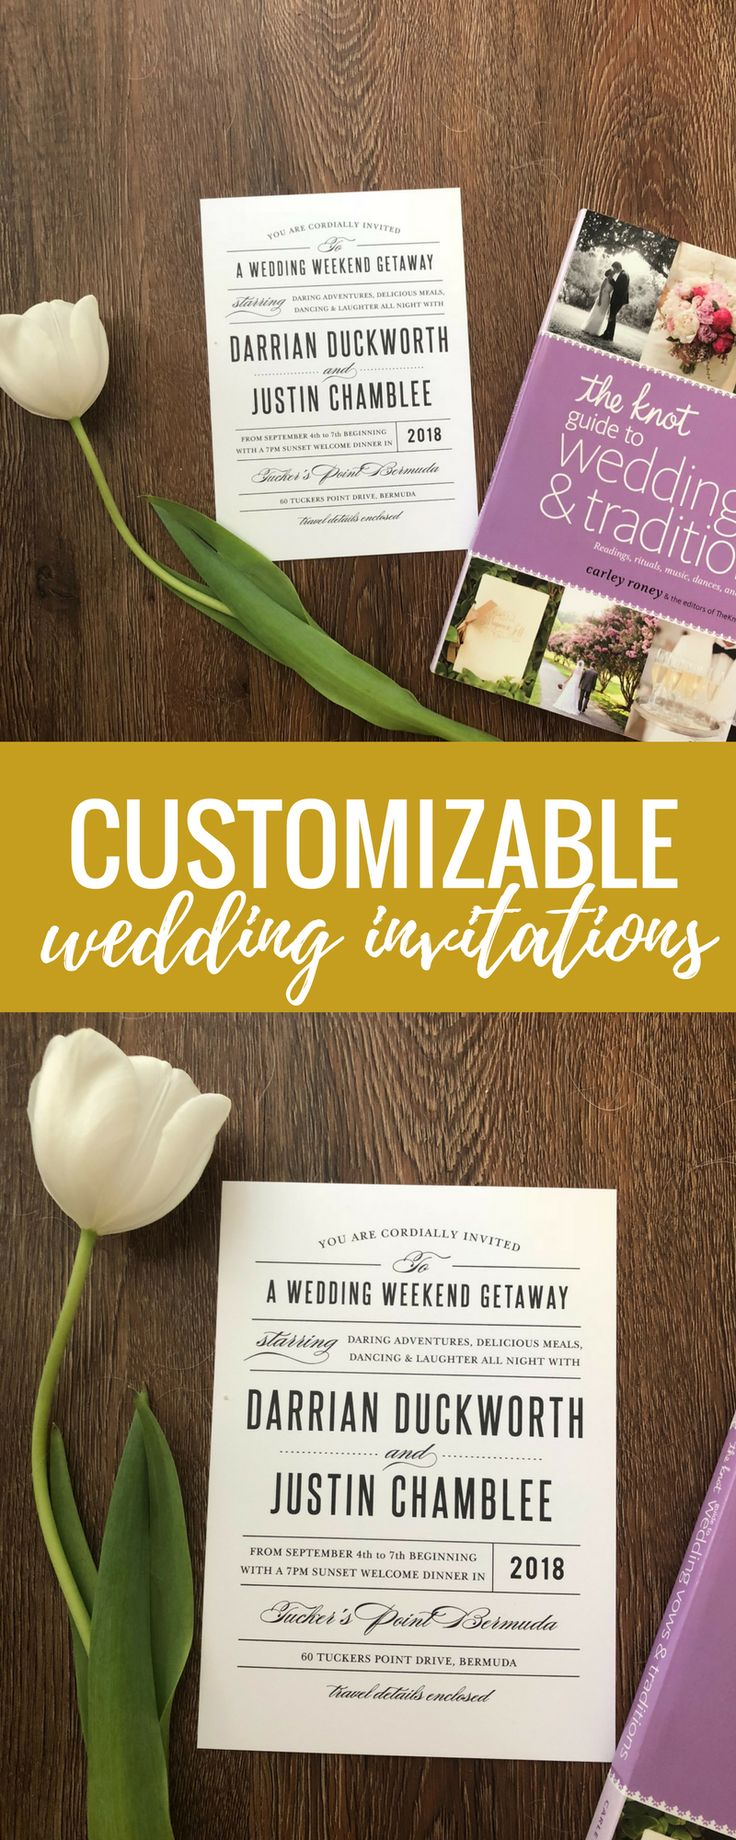 customizable wedding invitations, where to find wedding invitations, formal wedding invitations, wedding invitation inspiration